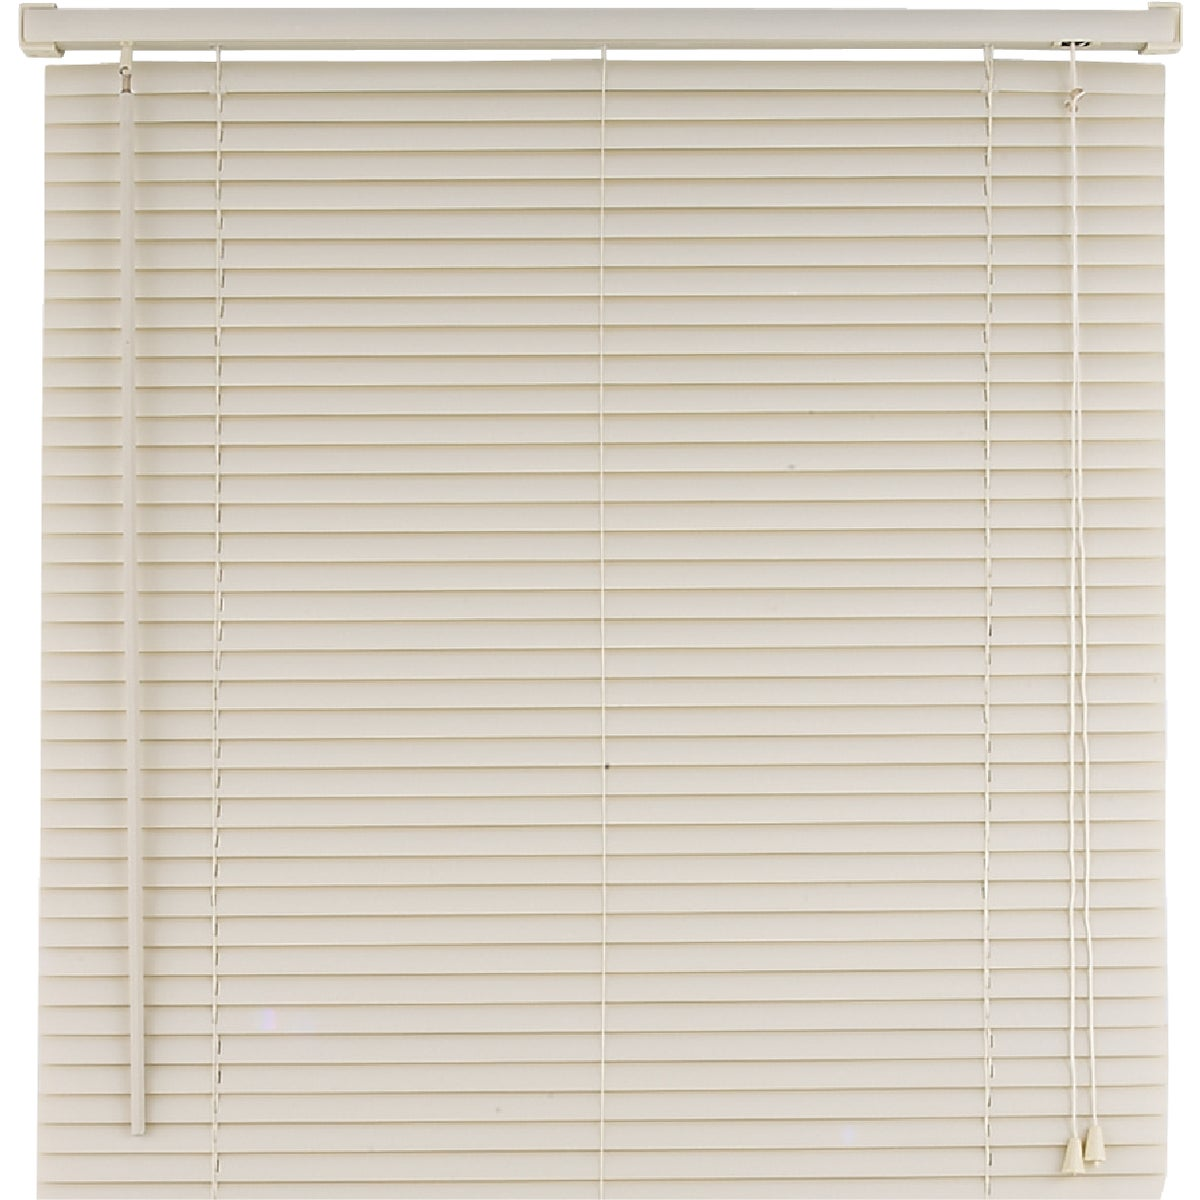 24X64 ALABASTER BLIND - 2464AL by Lotus Wind Incom